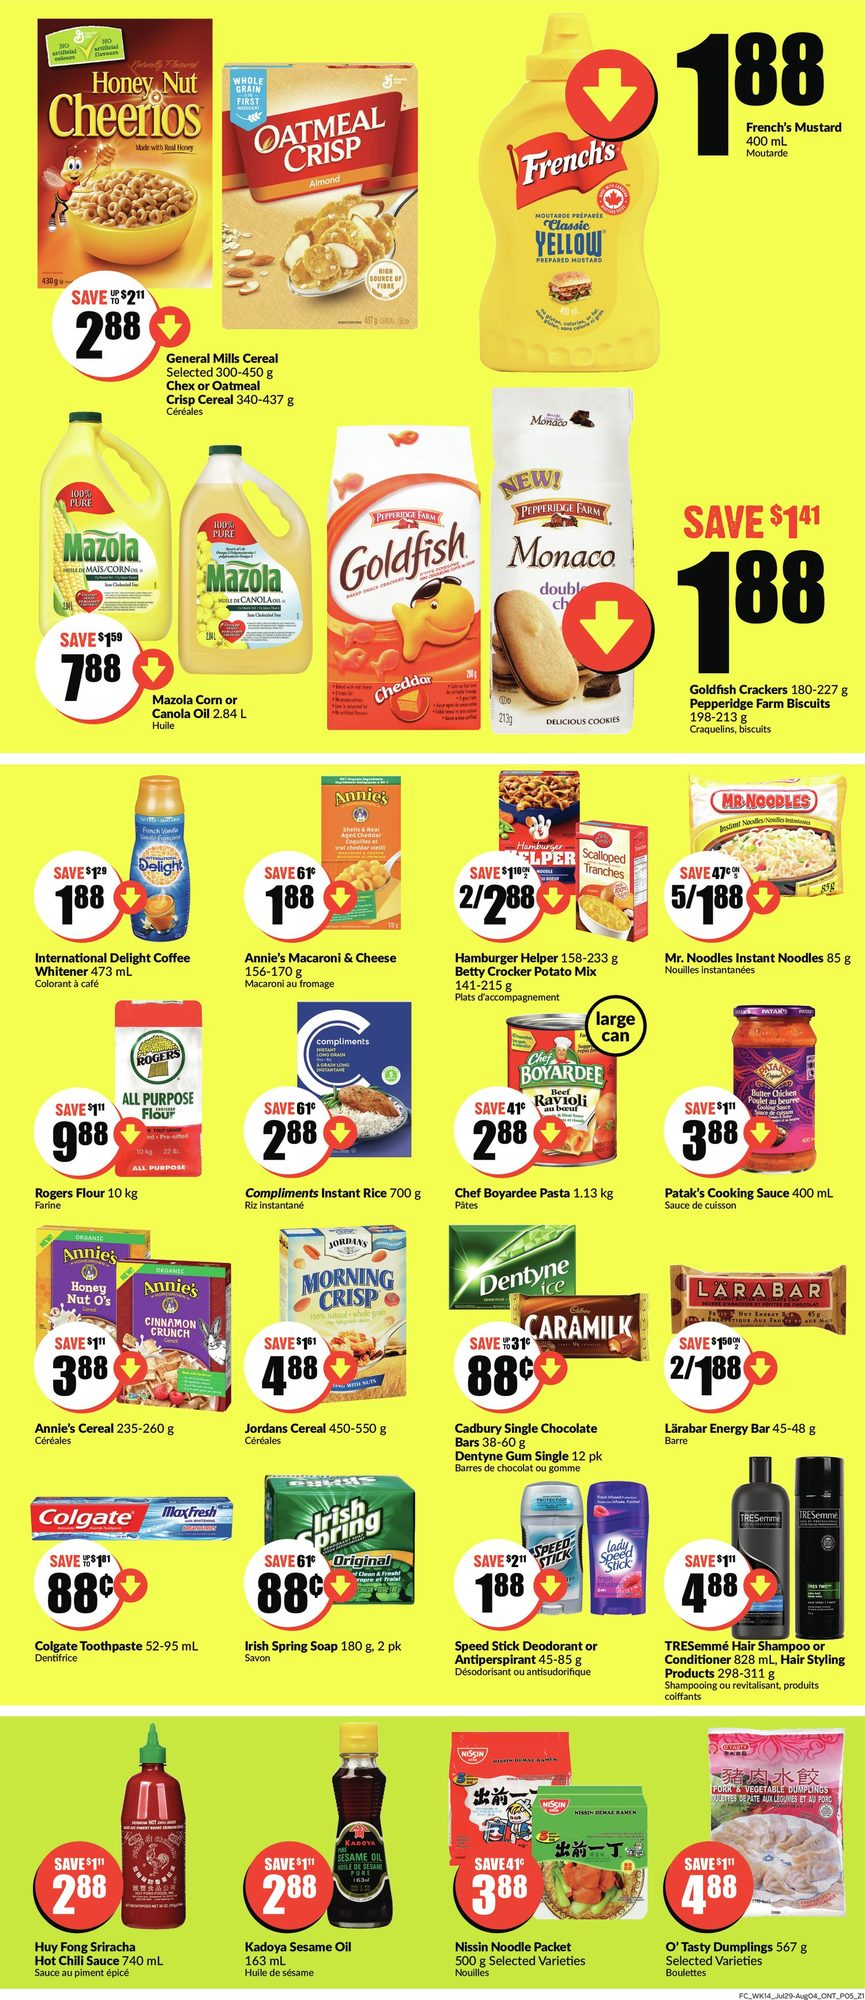 FreshCo - Weekly Flyer Specials - Page 7